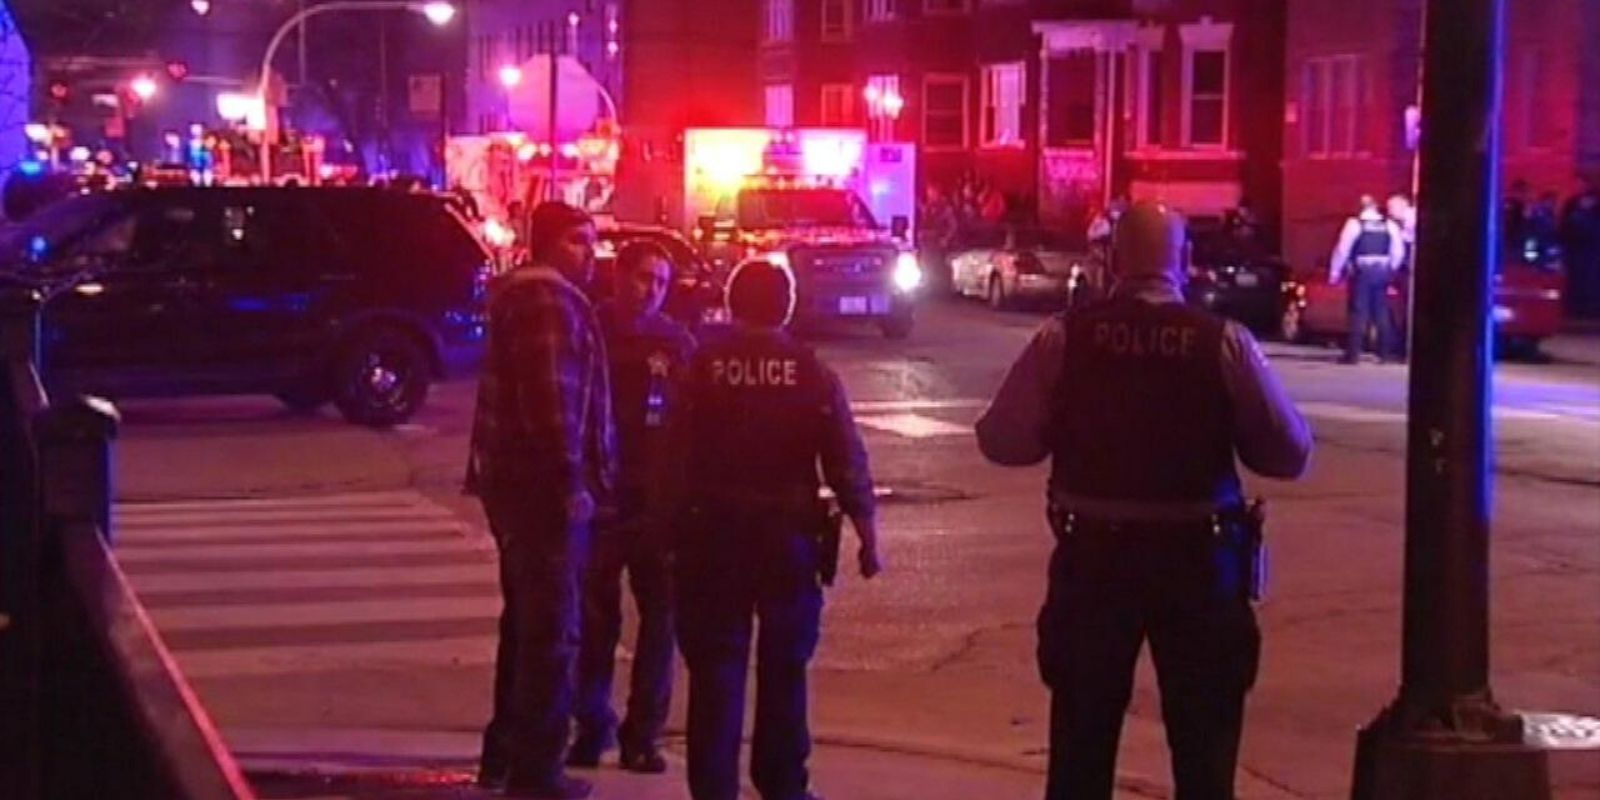 Seven-year-old girl shot while trick-or-treating